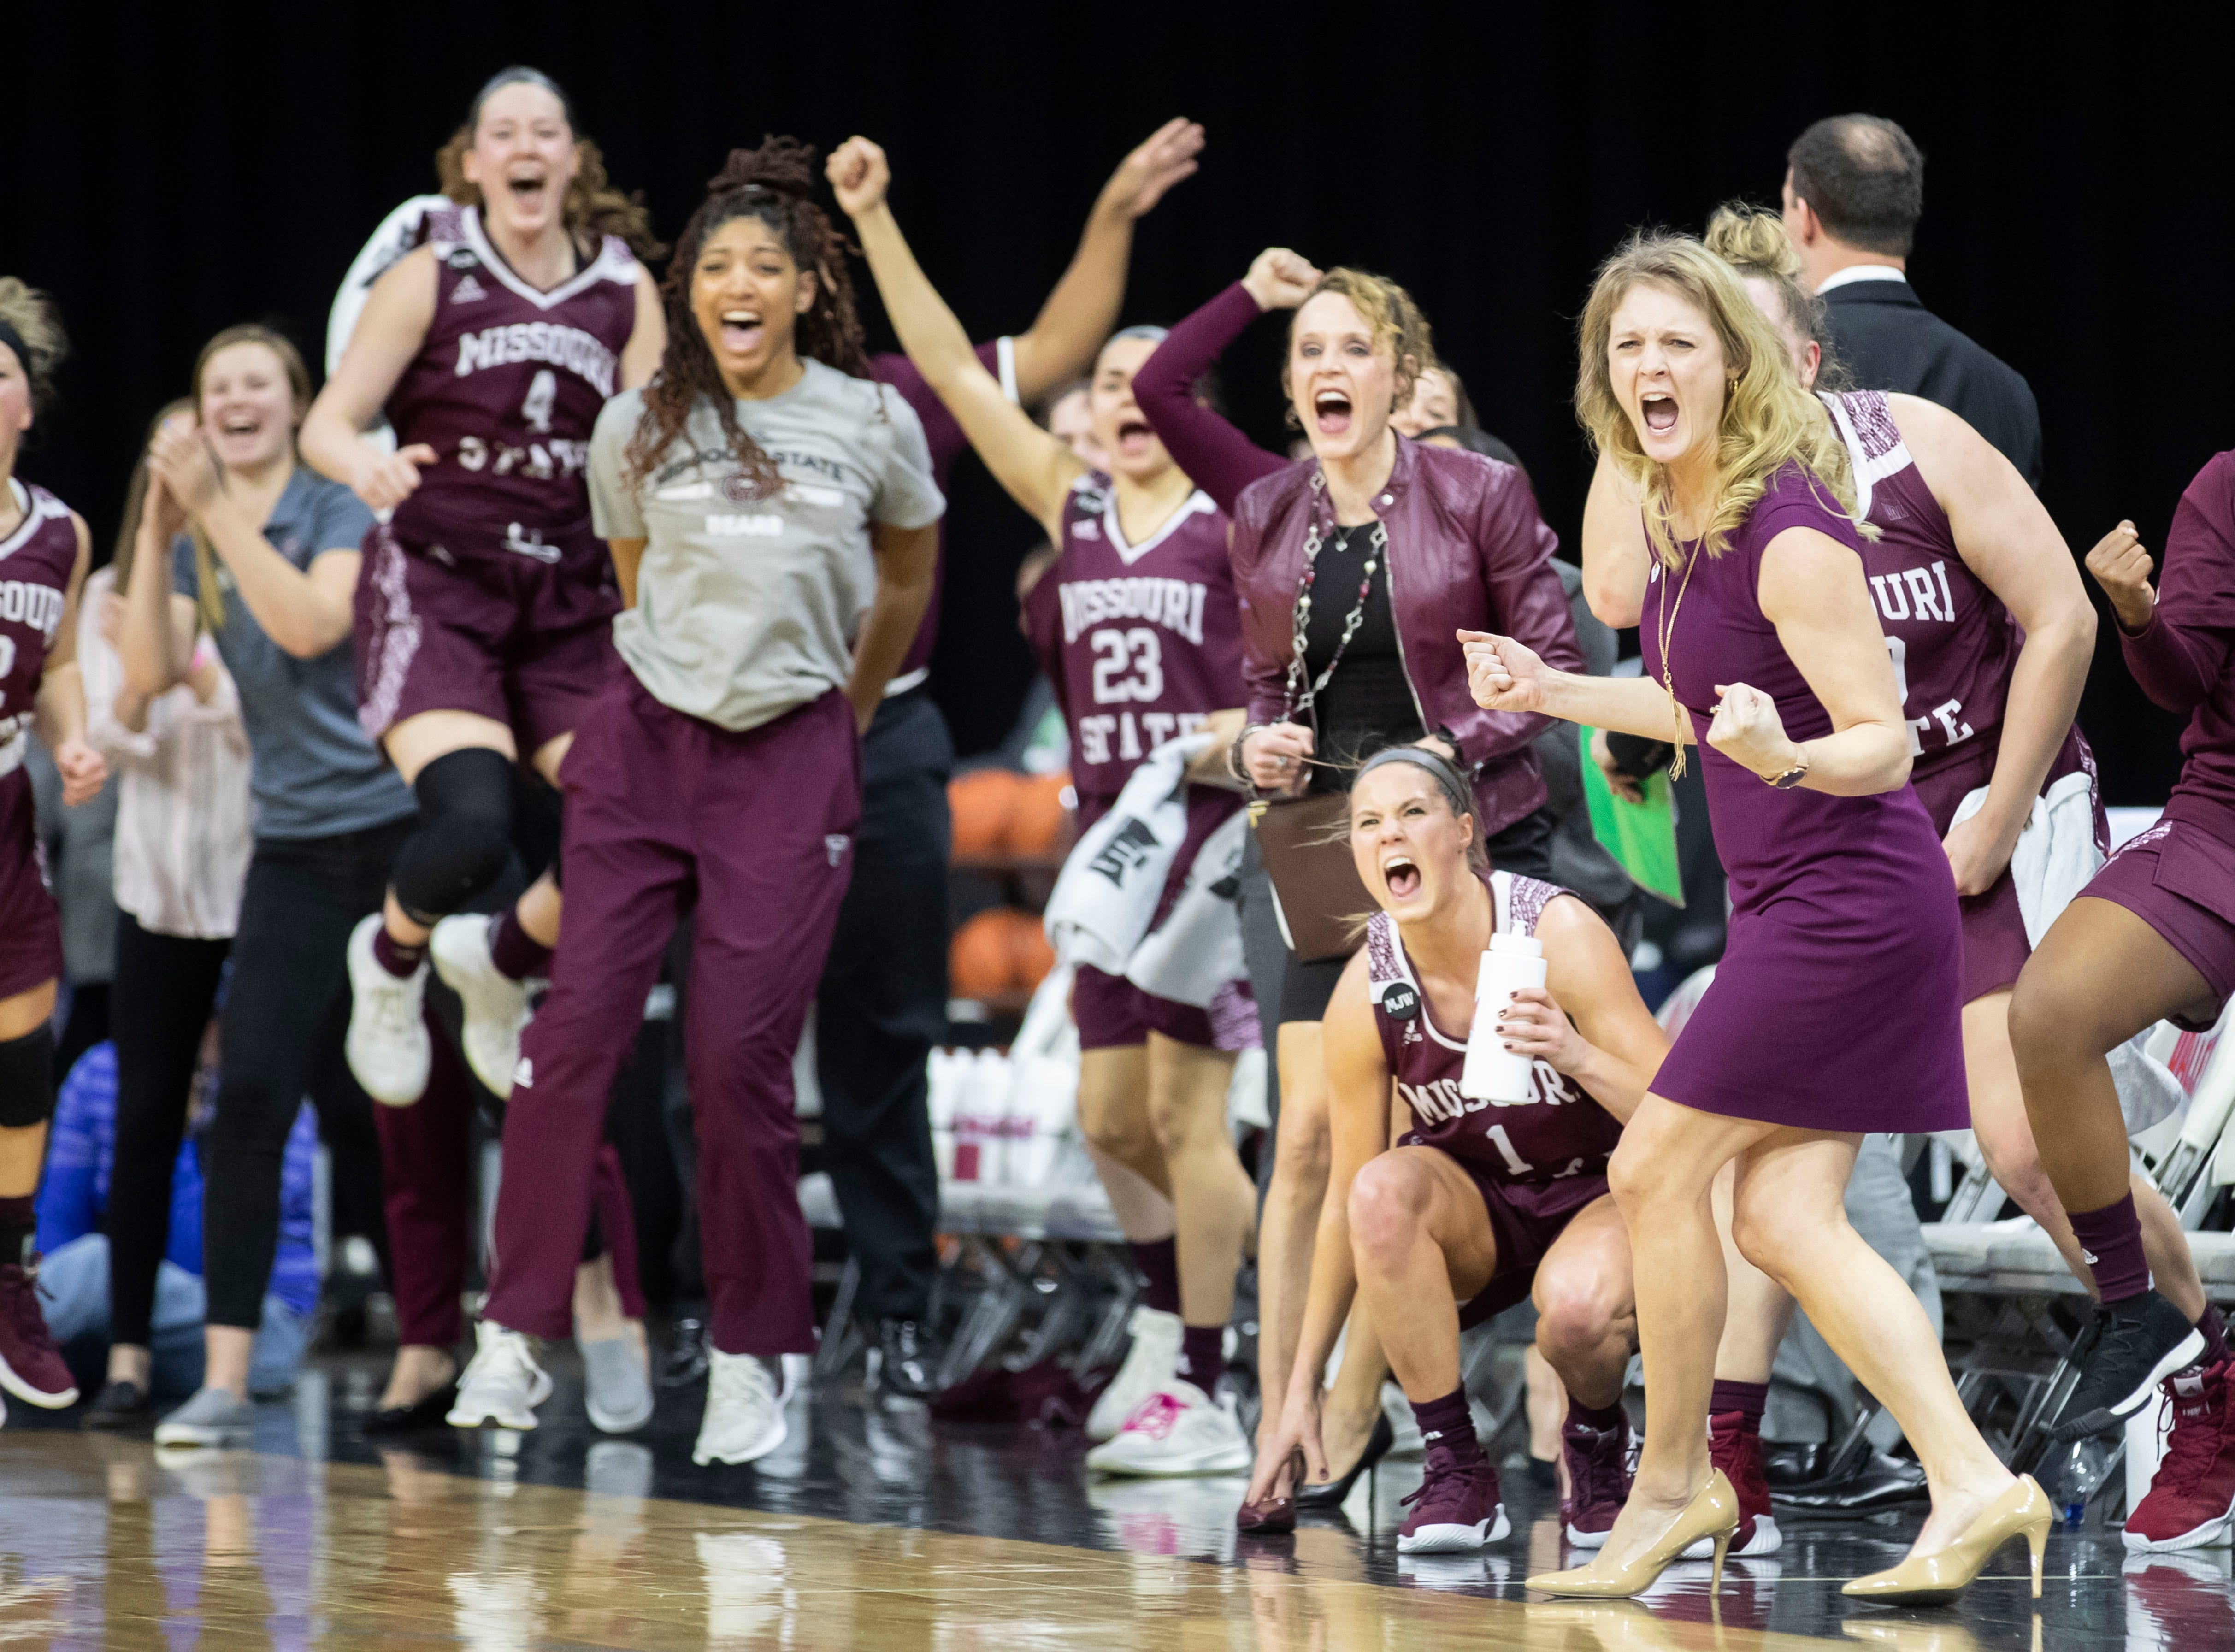 The Lady Bears bench reacts during the first half of their win over Drake in the final of the MVC Tournament in Moline, Ill on Sunday, March 17, 2019. Jesse Scheve/Missouri State University